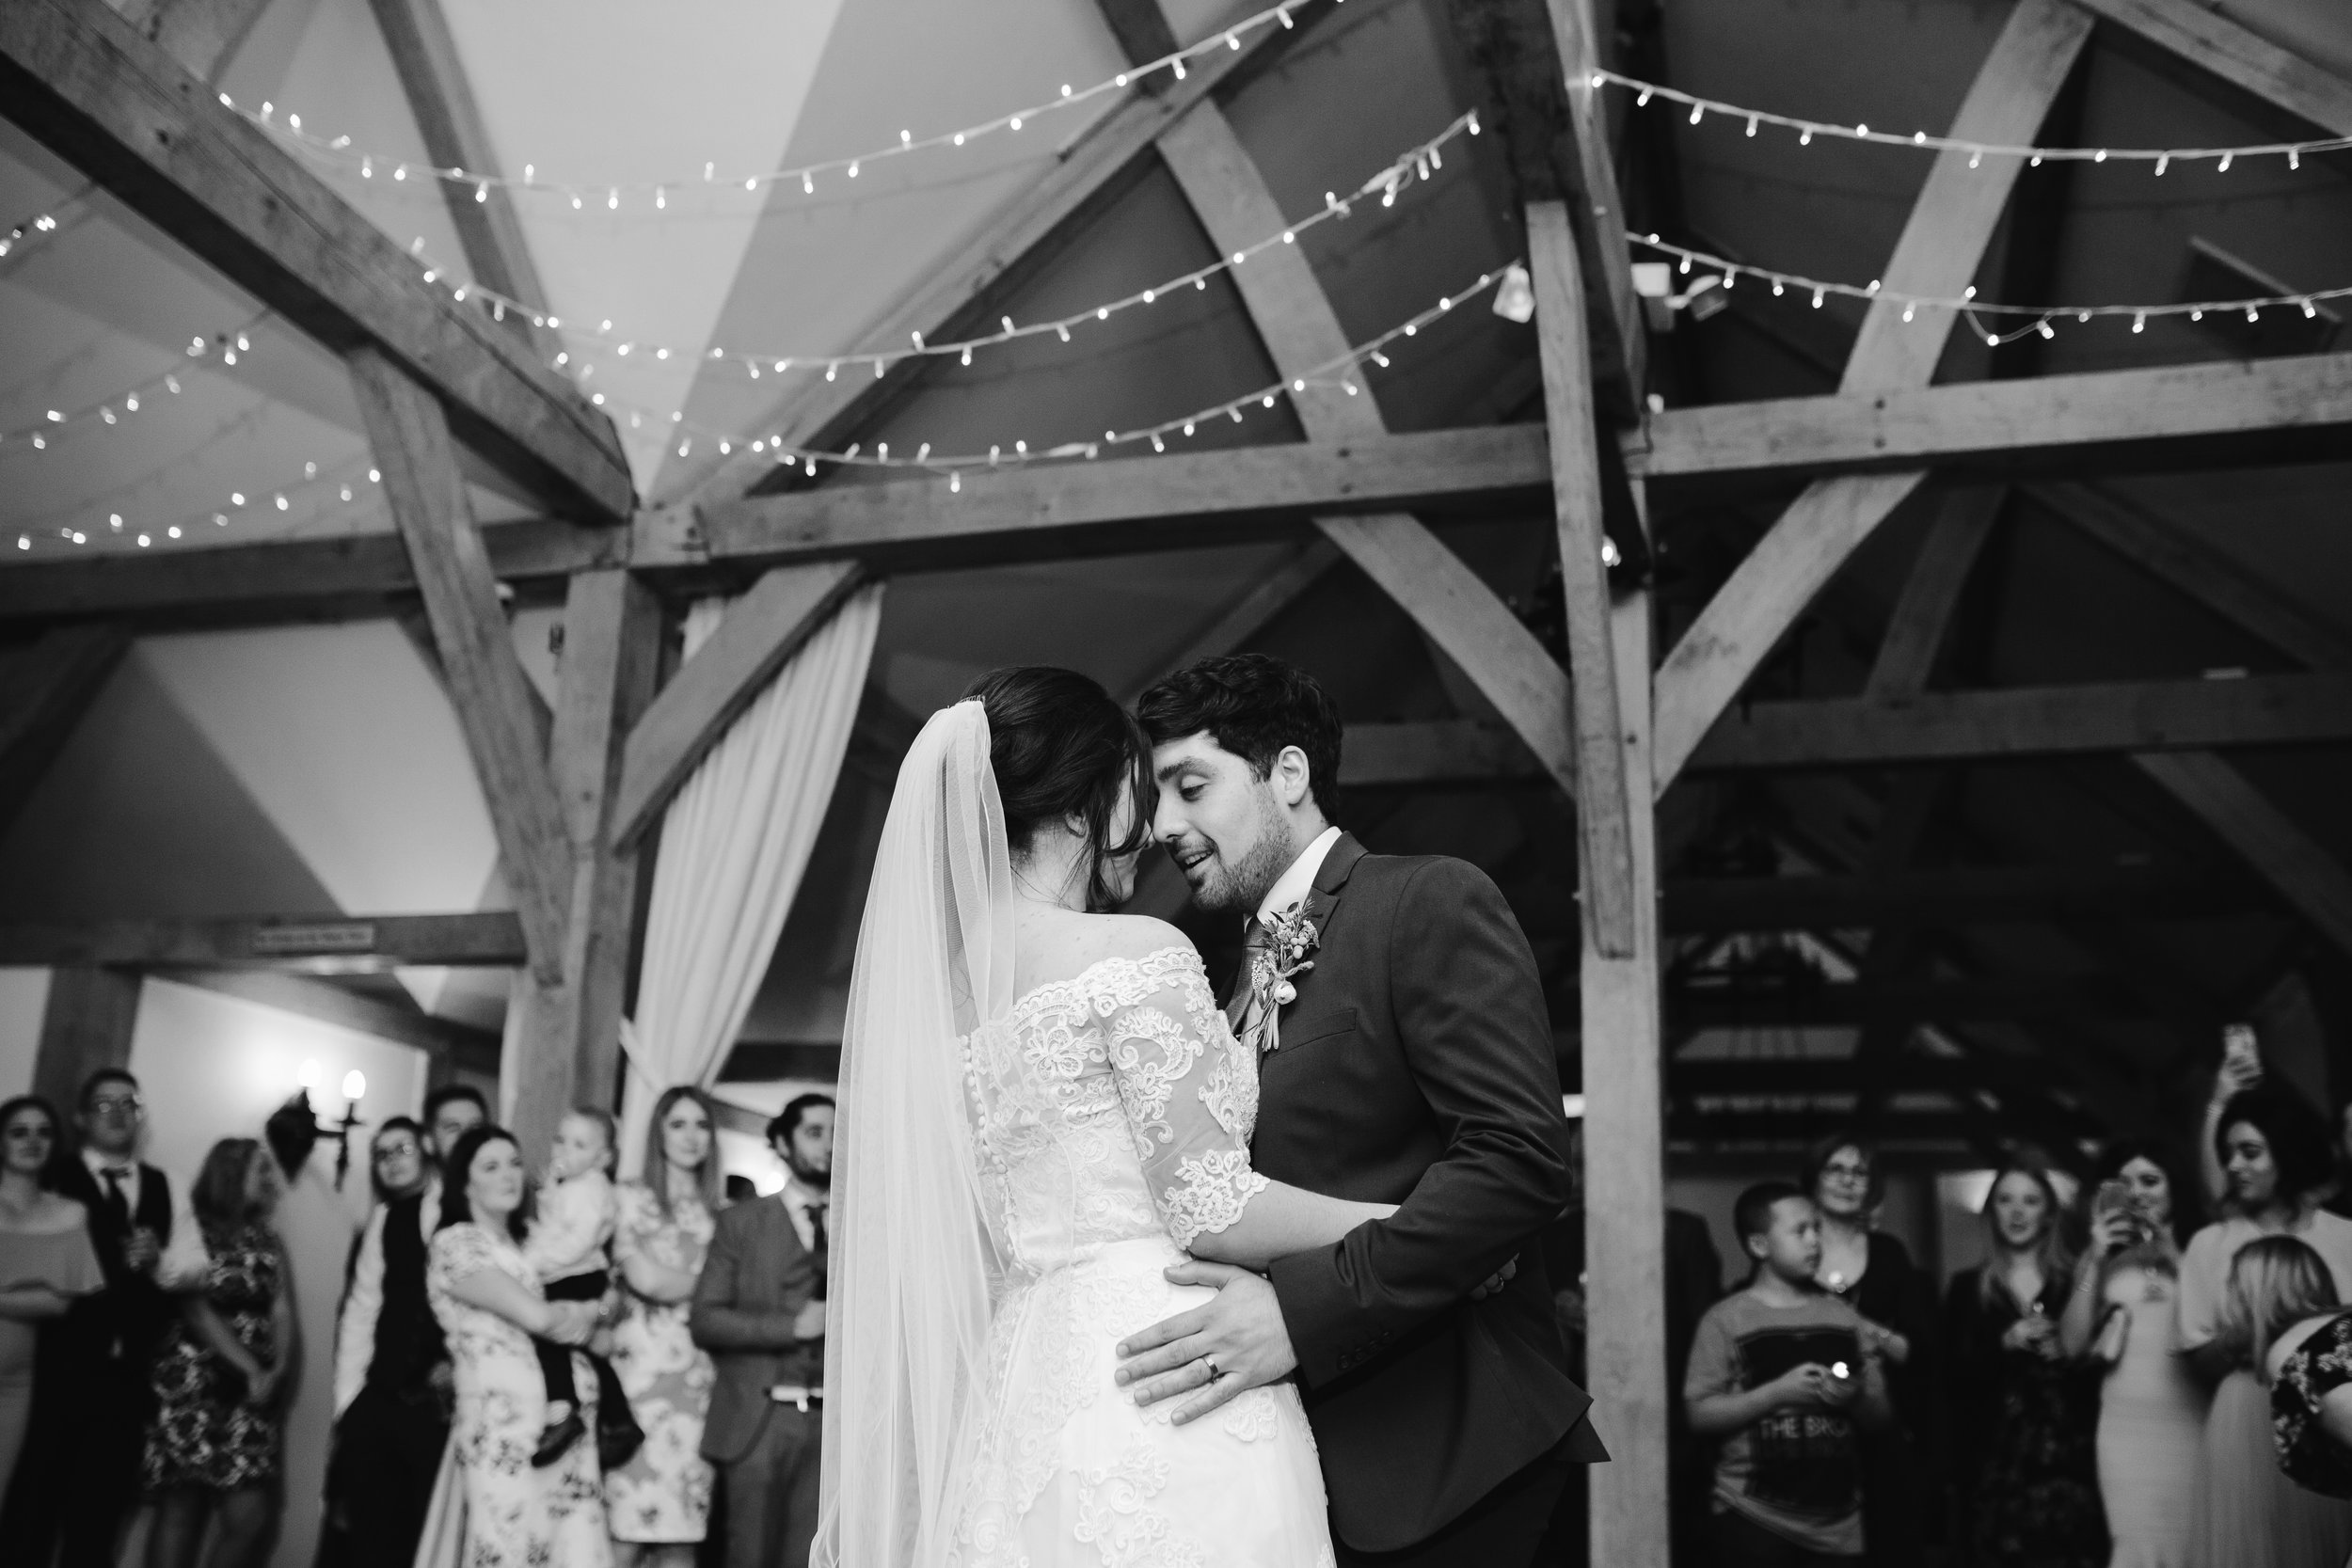 Sandhole Oak Barn, Rustic Wedding, DIY Wedding, Manchester wedding photographer, Birmingham wedding photographer, barn wedding-305.jpg